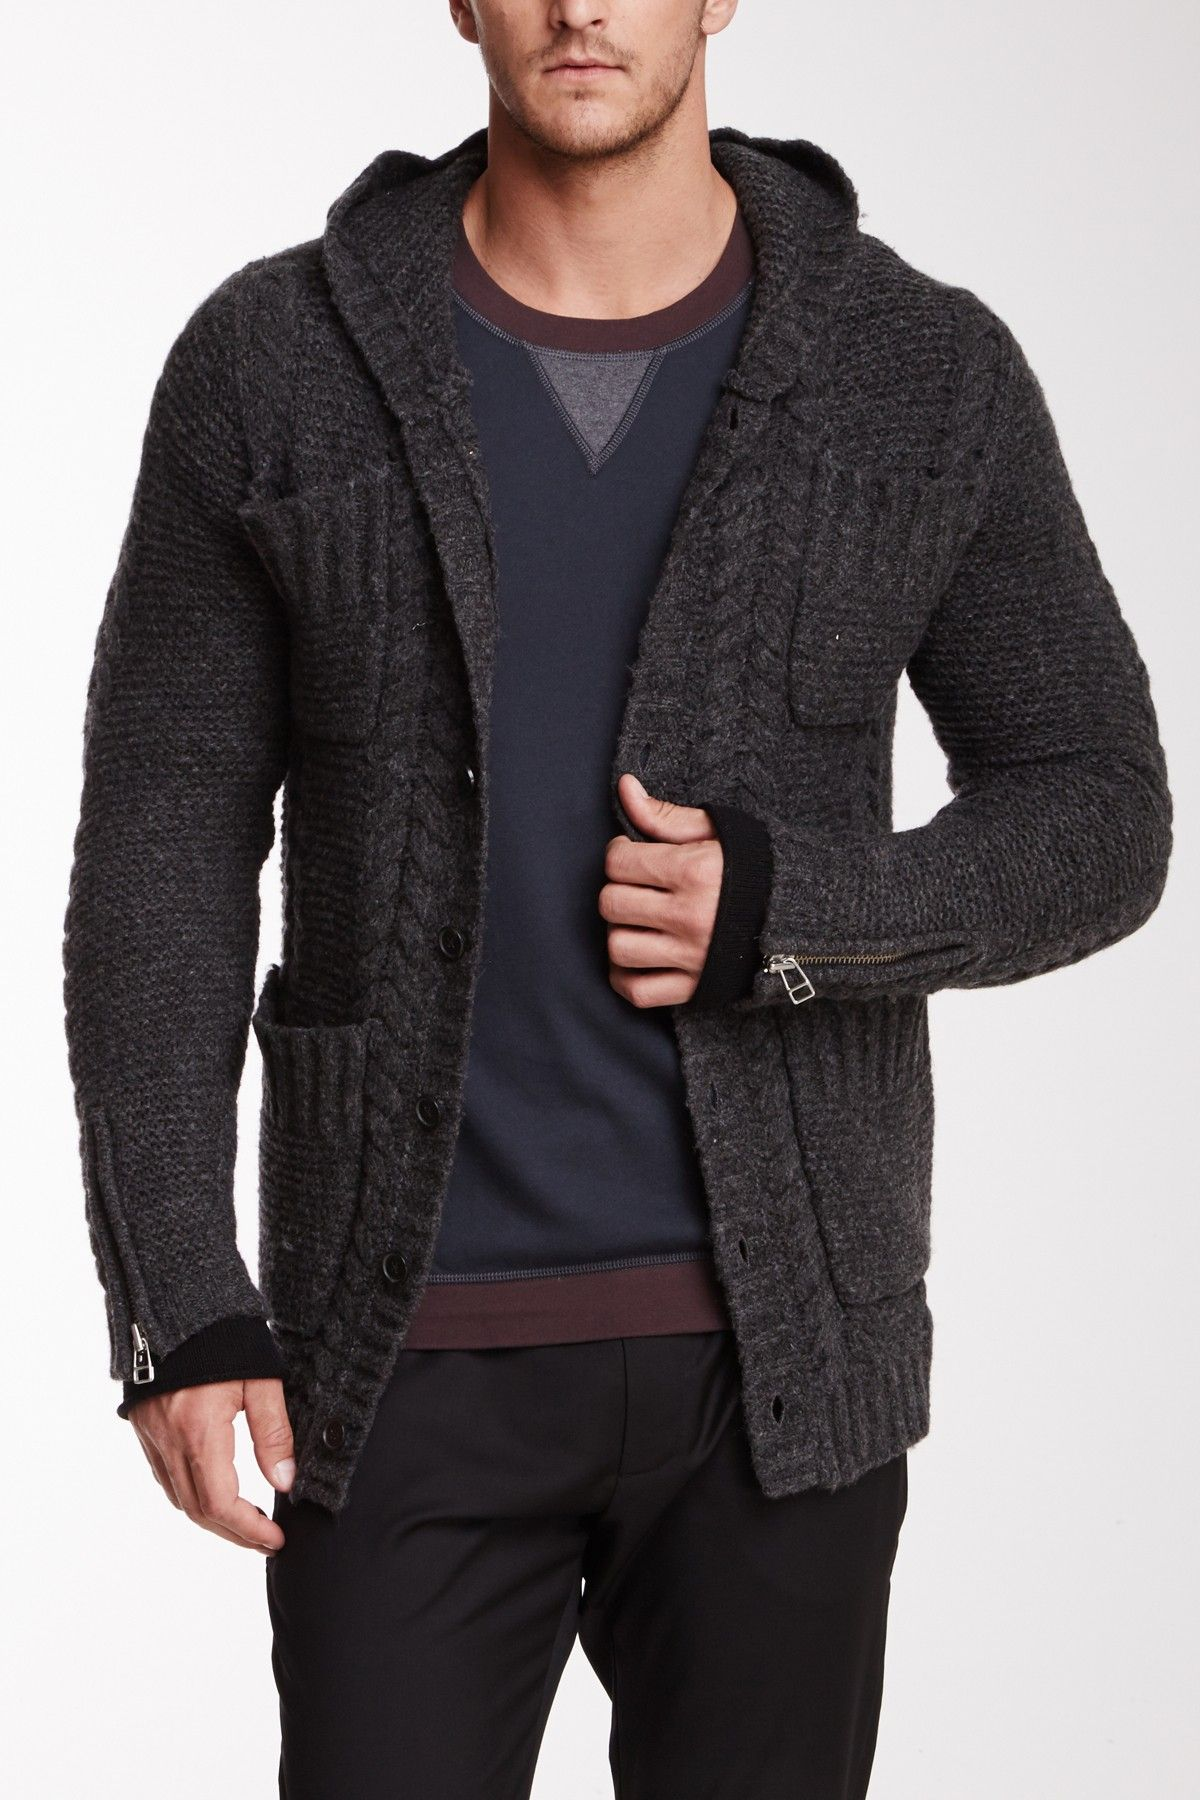 Wool Blend Cable Cardigan | Style : Gentleman | Pinterest | Wool ...